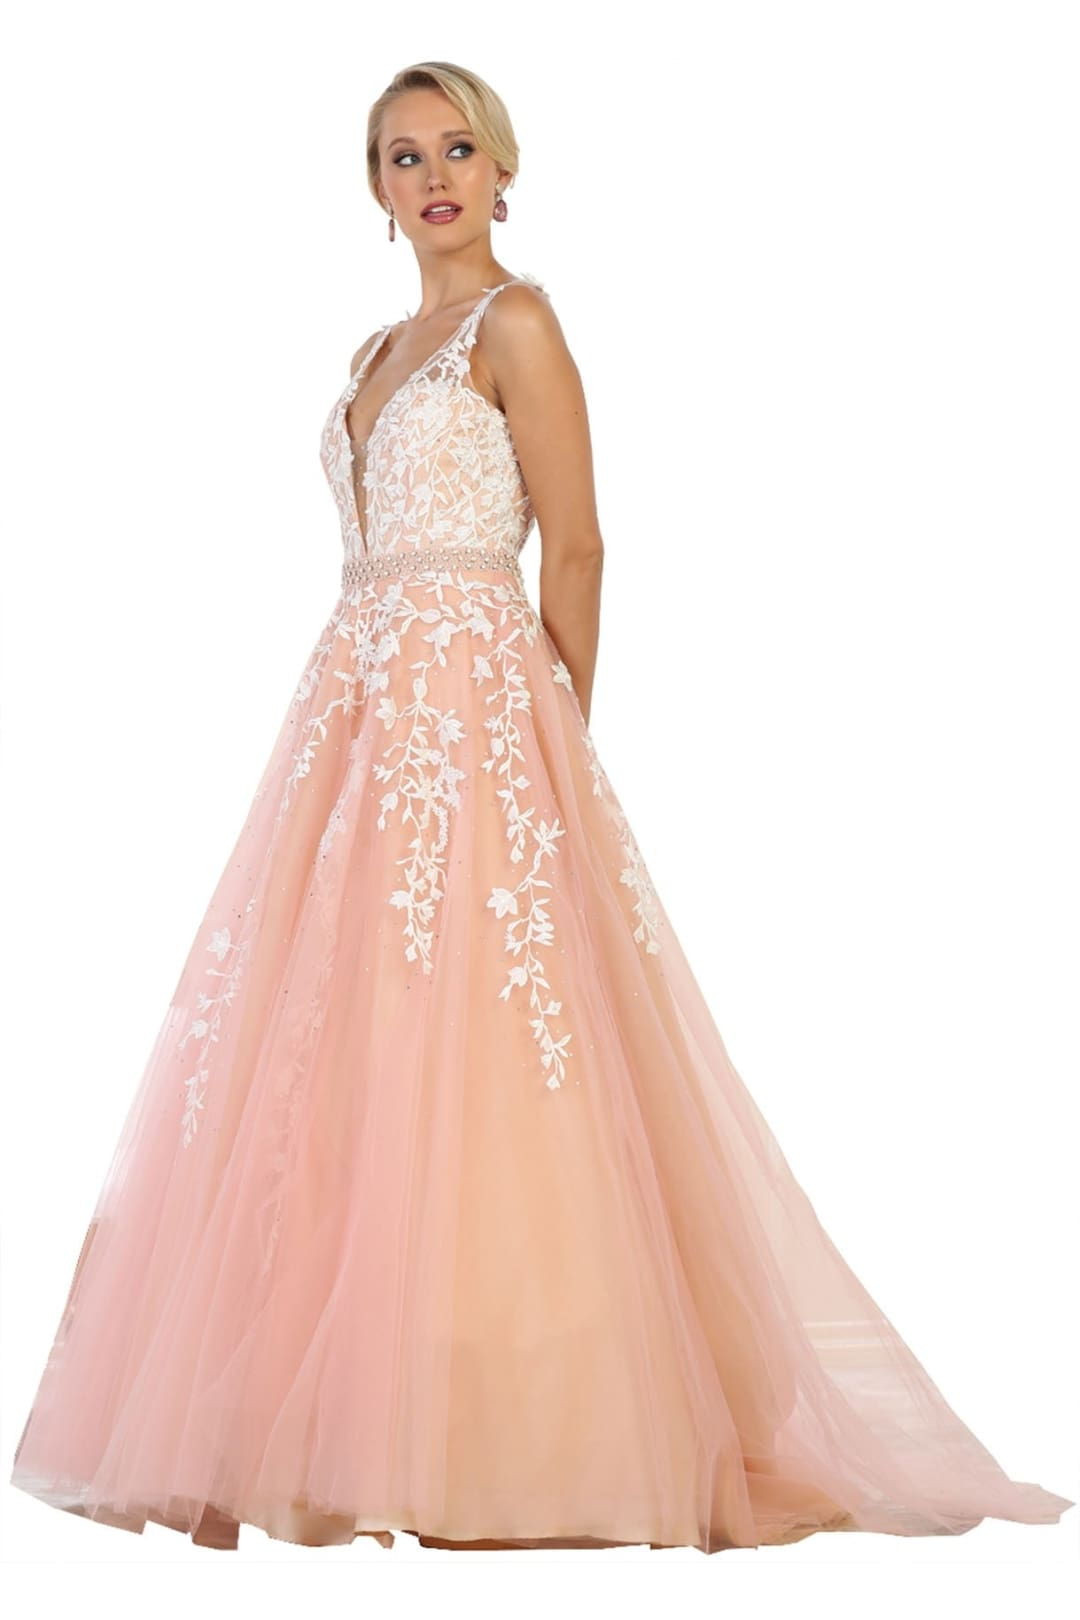 A-line Prom Gown - Blush/Nude / 12